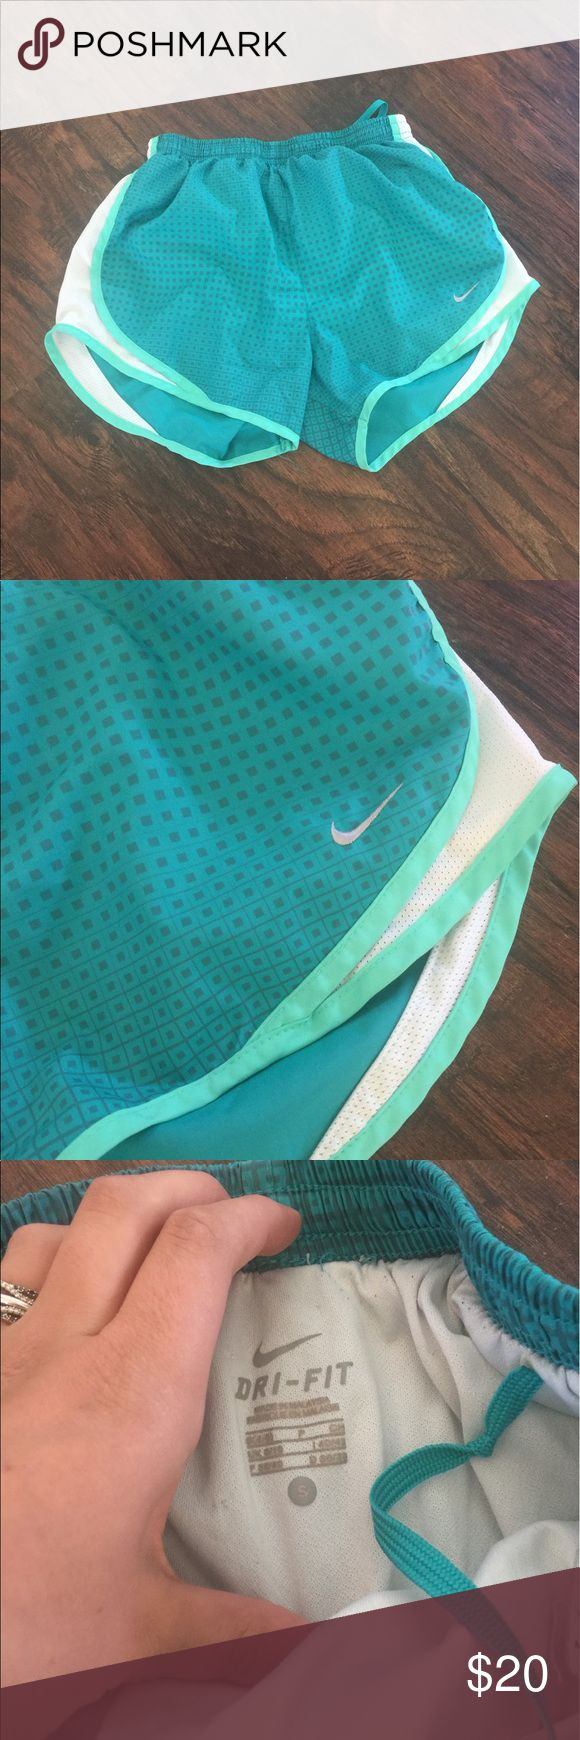 Nike dri-fit shorts Nike dri-fit summer, exercising, running, home life. Shorts. You can wear them any wear. Very comfy! Pictures show it all Nike Shorts